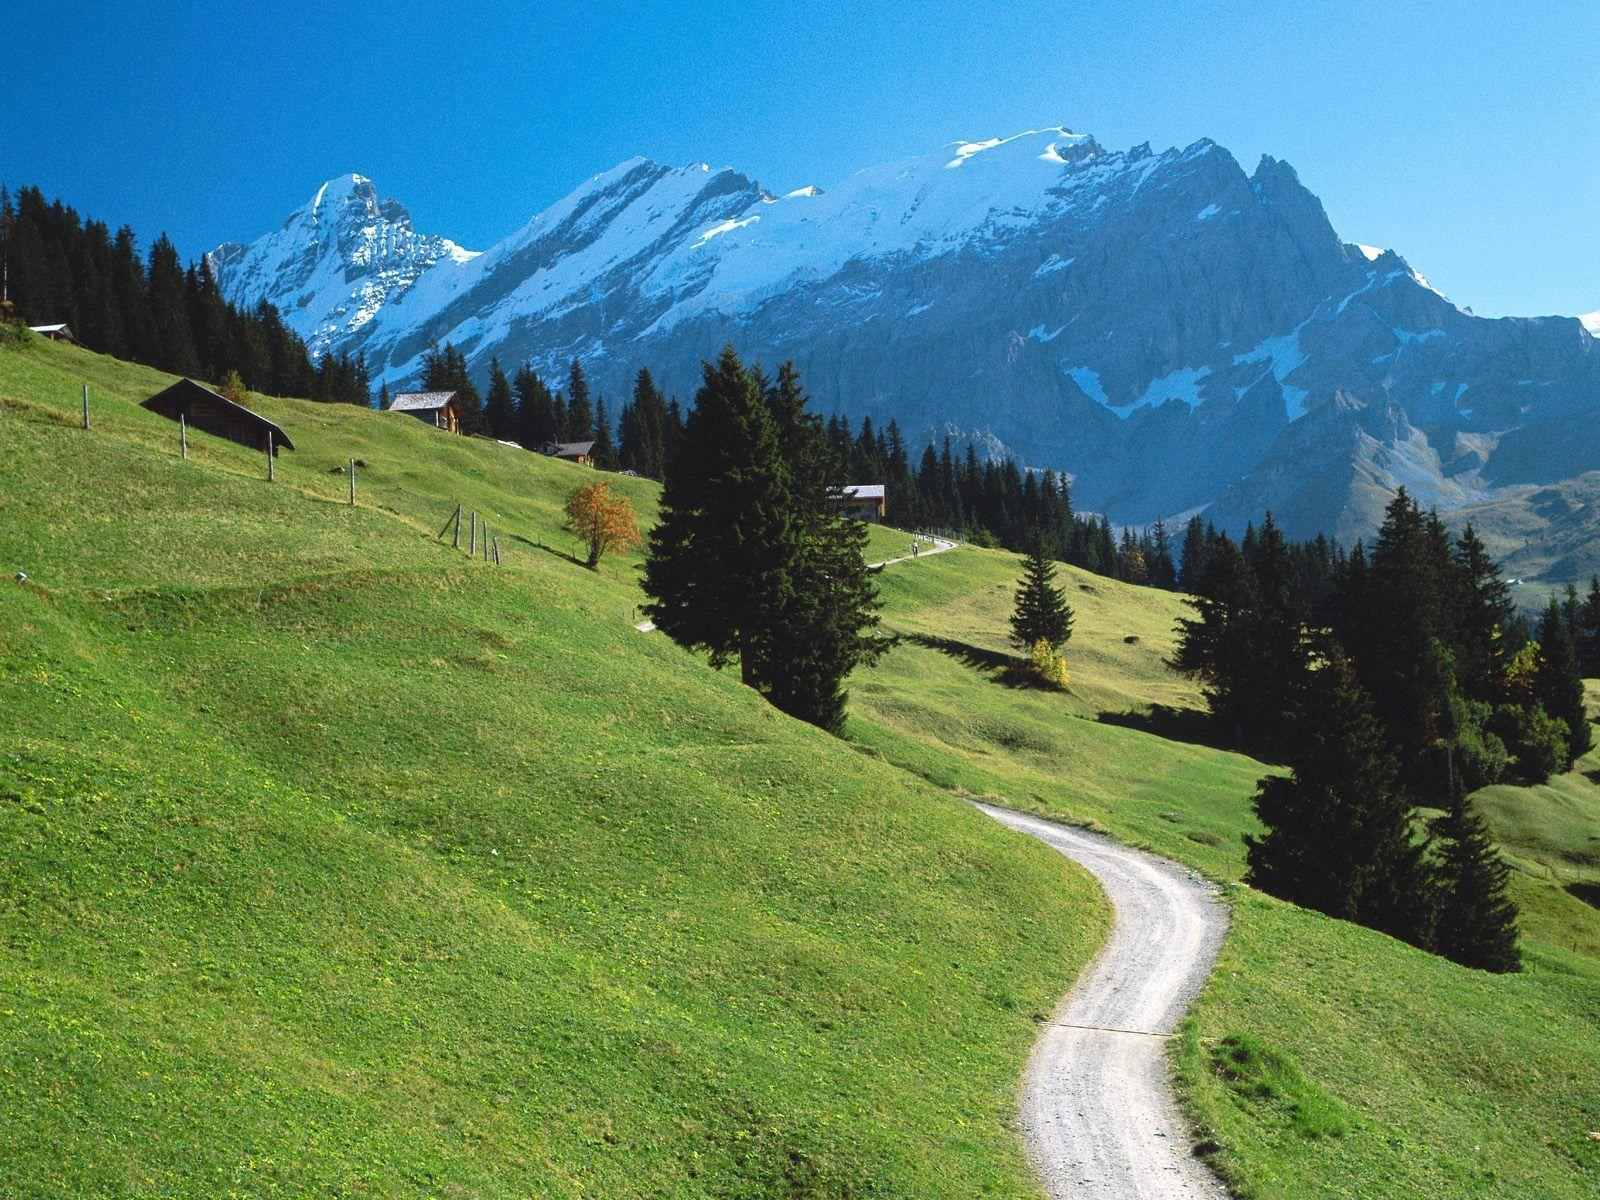 Bernese Oberland, Switzerland wallpapers and images - wallpapers ...